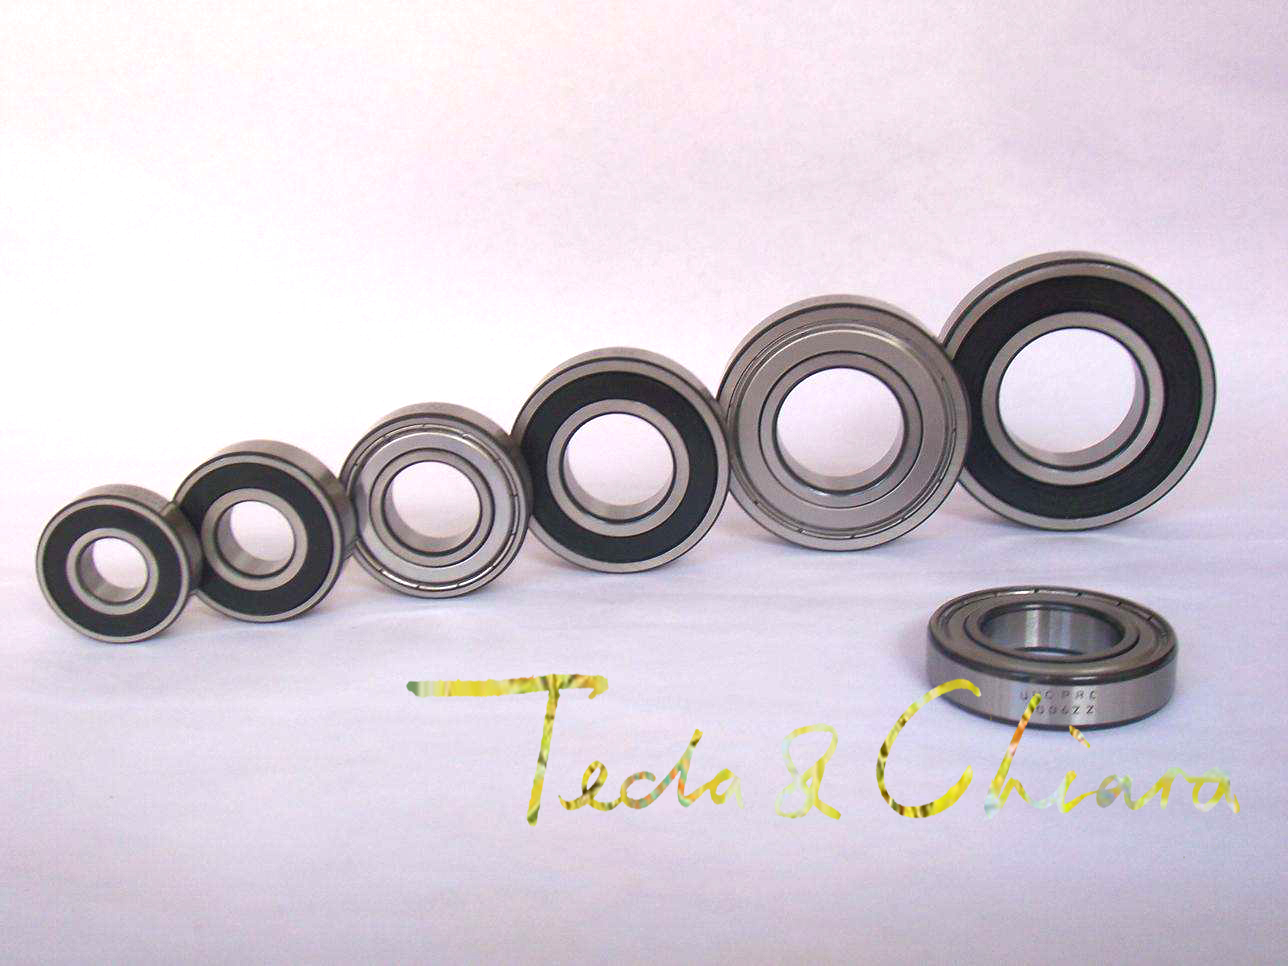 626 626ZZ 626RS 626-2Z 626Z 626-2RS ZZ RS RZ 2RZ Deep Groove Ball Bearings 6 x 19 x 6mm High Quality globo спот globo grosetto 5730 3